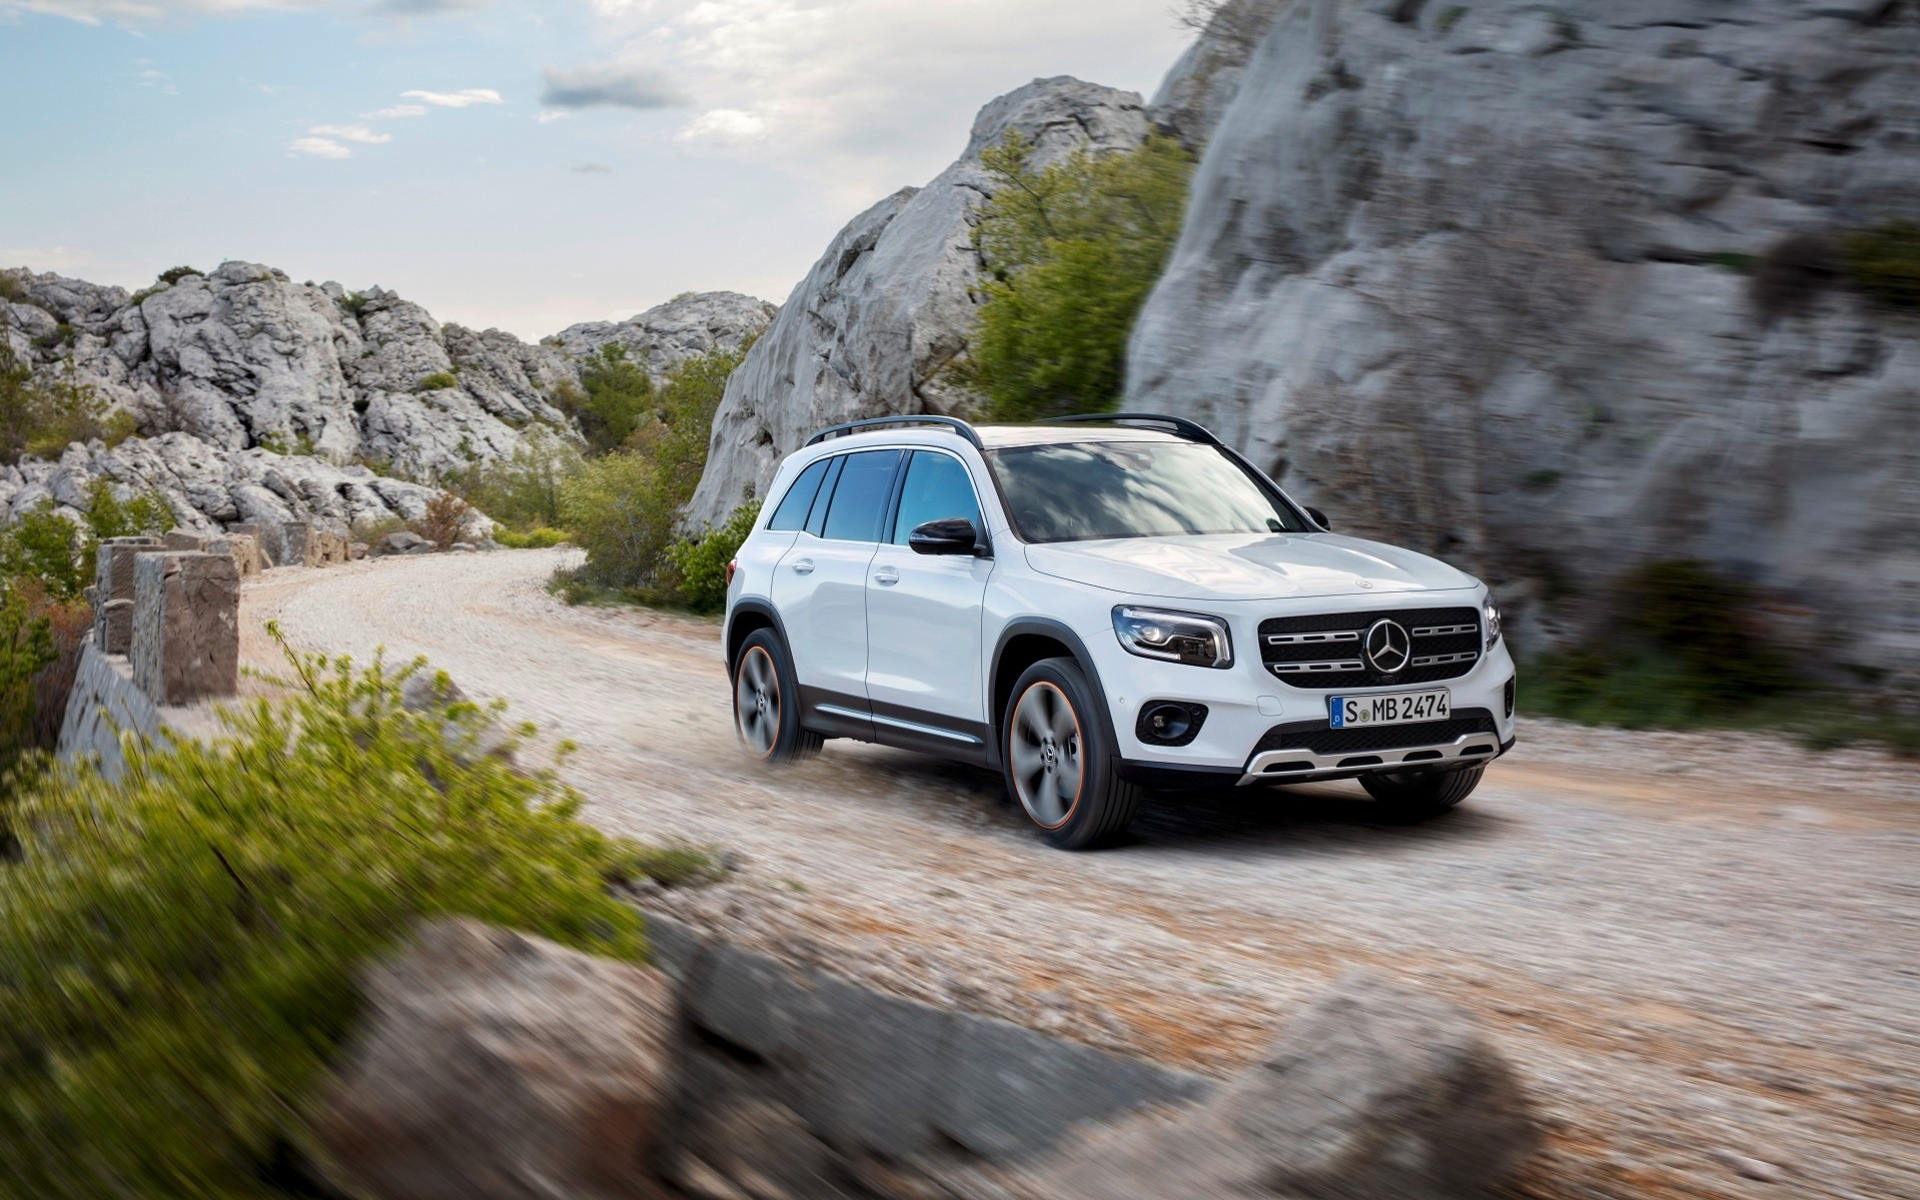 2020 Mercedes-Benz GLB: Specs, Design, Price >> Mercedes Benz Glb Unveiled With Off Road Chops Up To Seven